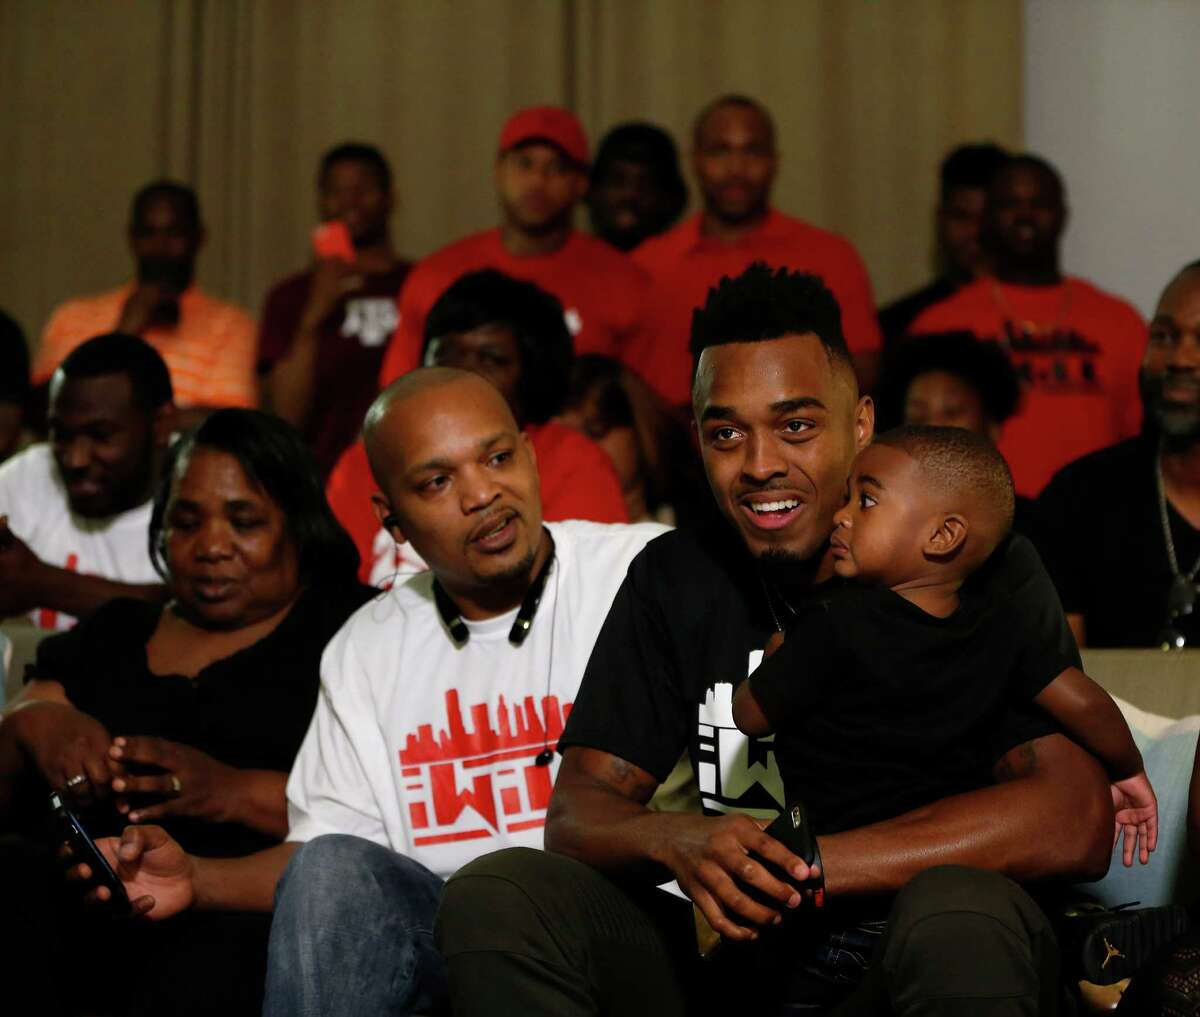 University of Houston's William Jackson III reacts as he holds his nephew, Kamari Martin, 2, after being selected by the Cincinnati Bengals during his NFL Draft party watch at the Westin Oaks in the Galleria, Thursday, April 28, 2016, in Houston.